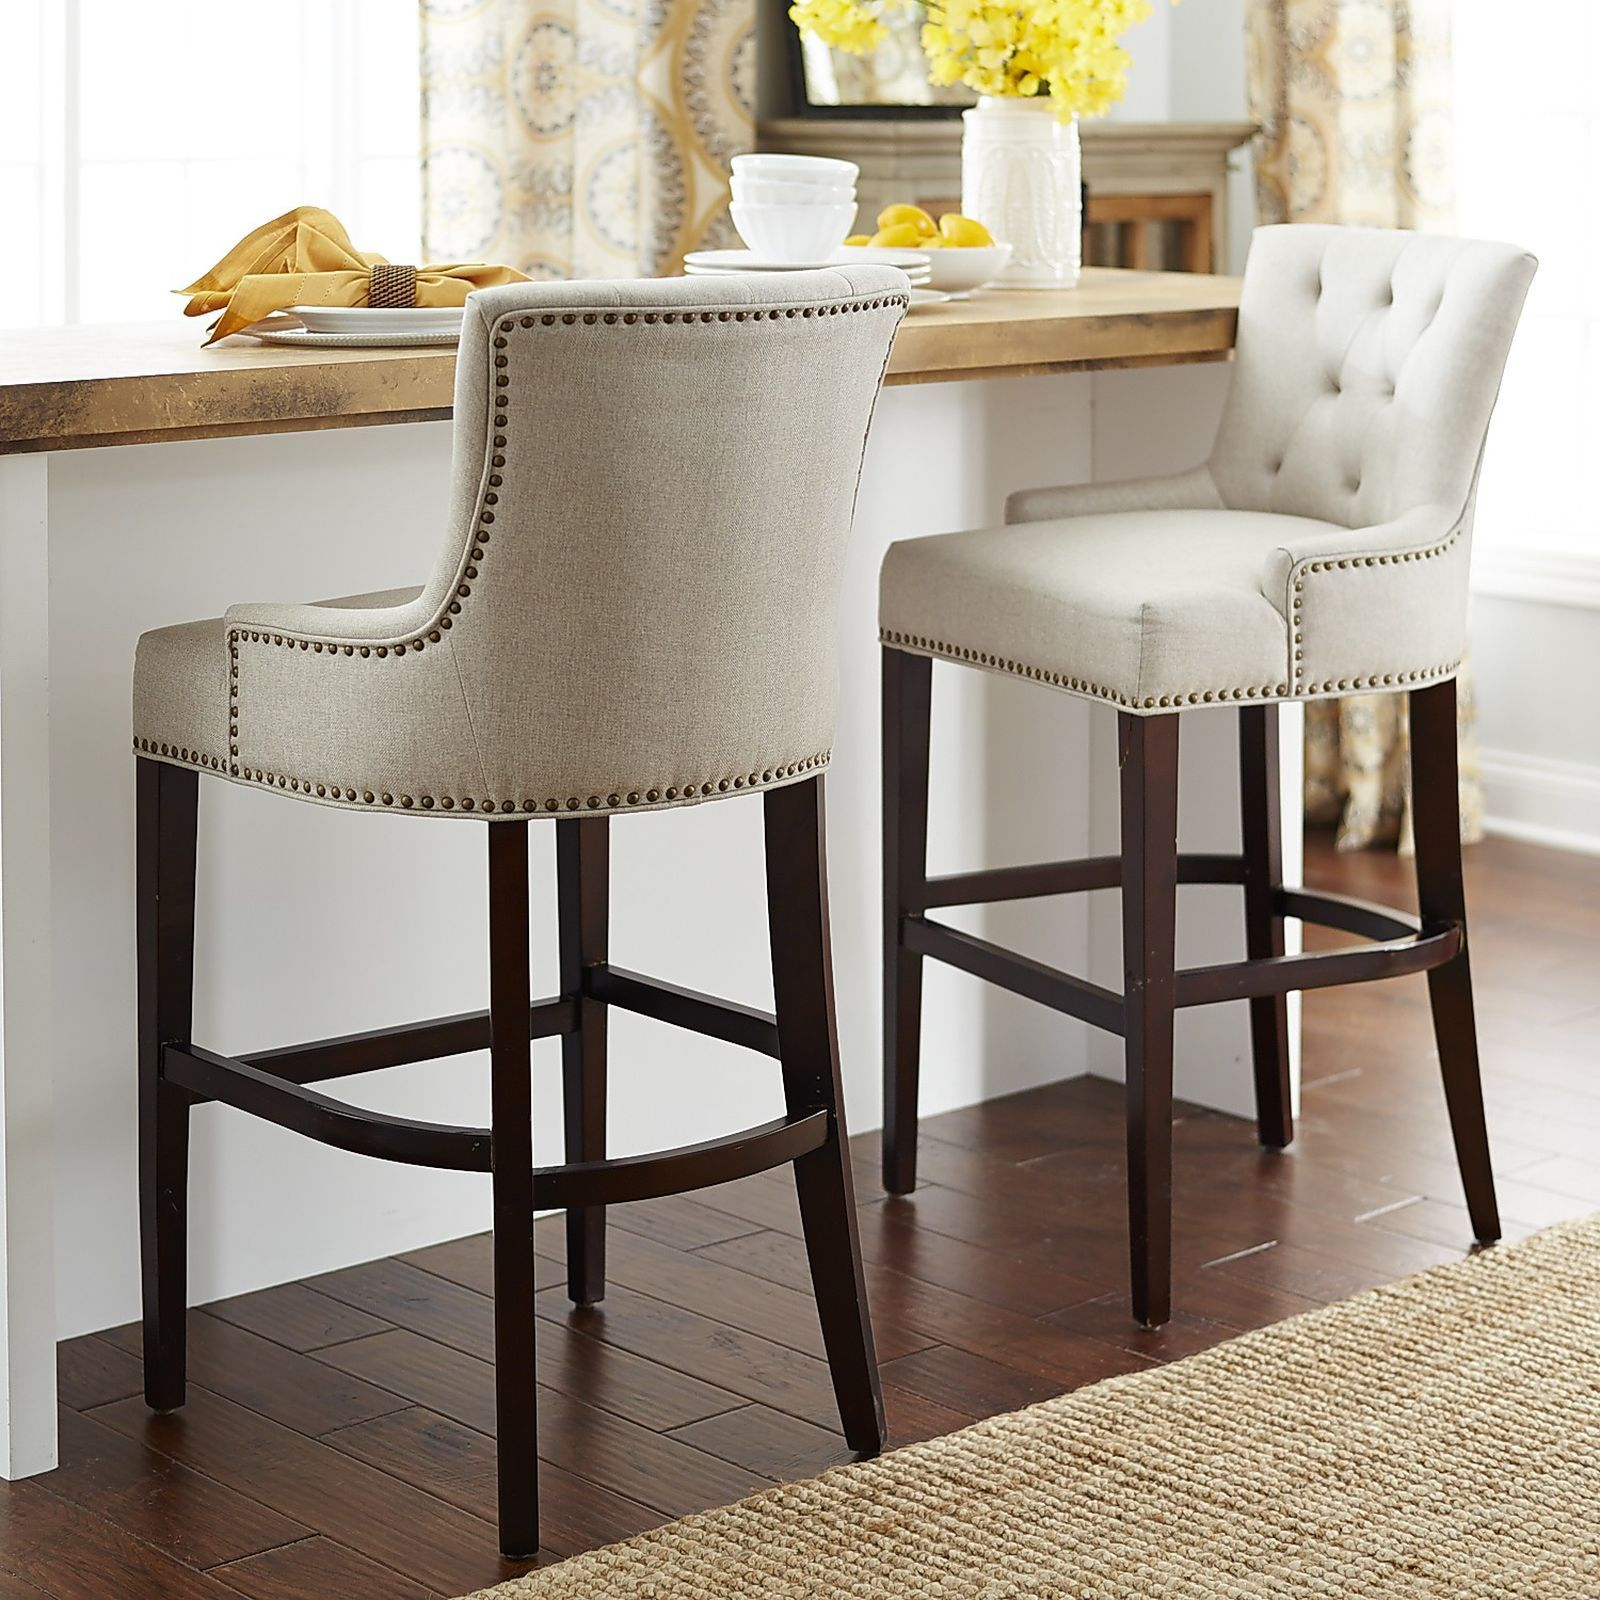 Ava Flax Counter Amp Bar Stool Downstairs Living Room